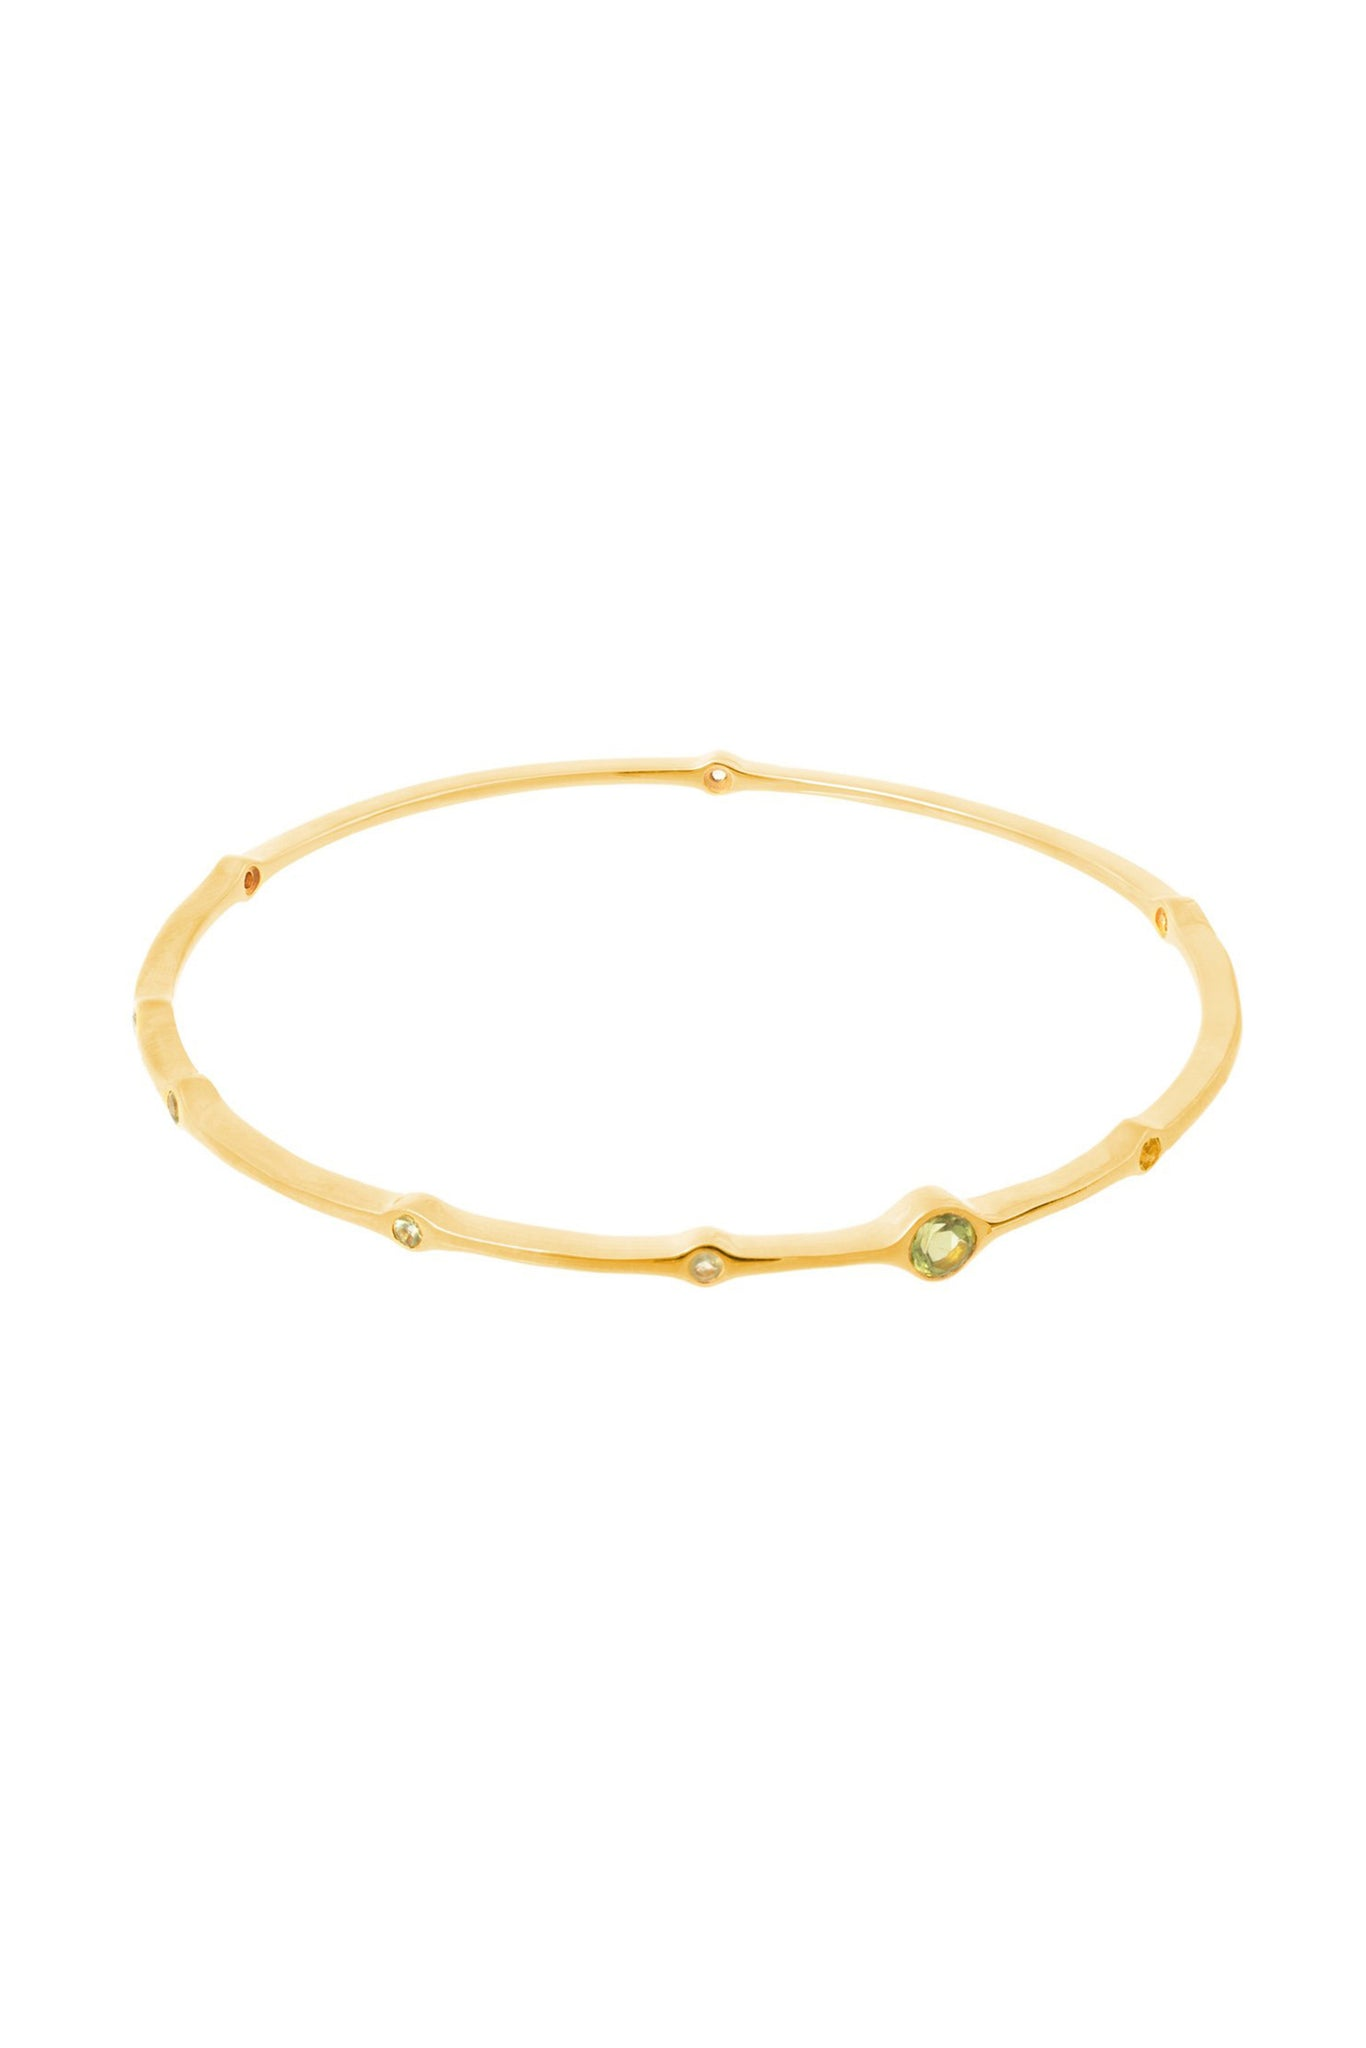 SOPHIA PERIDOT BANGLE